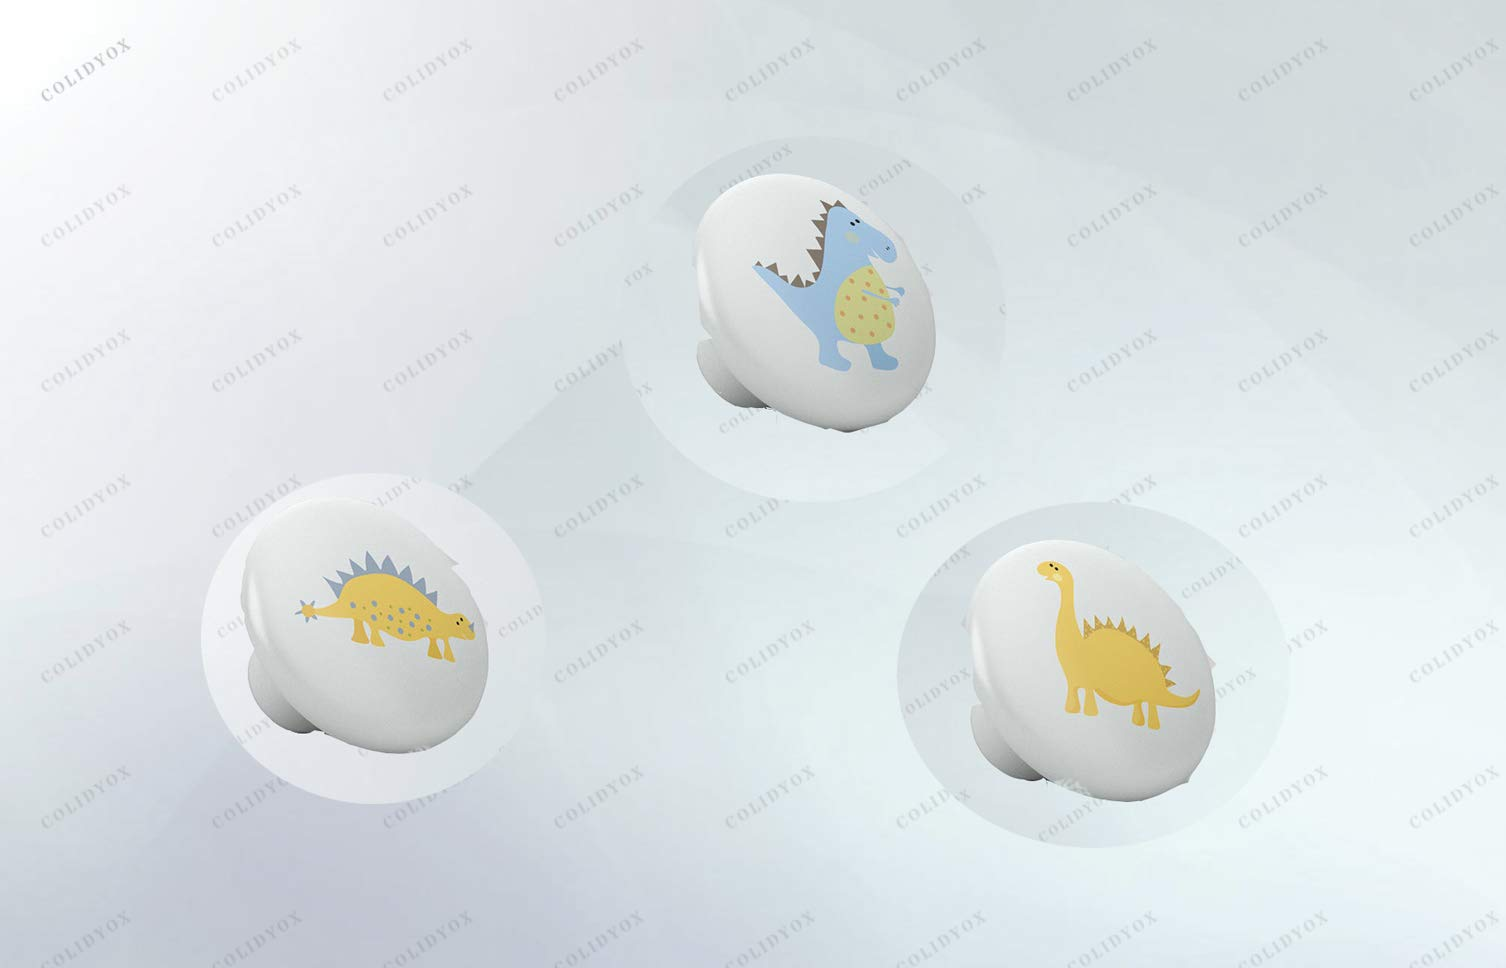 COLIDYOX___ Crystal Structure Ceramic Knob,Easy to Install,Beautiful Cute Dino Baby Dinosaur Rex Nursery Ceramic Knob,Kitchen cabinets, wardrobes, and/or Dressers